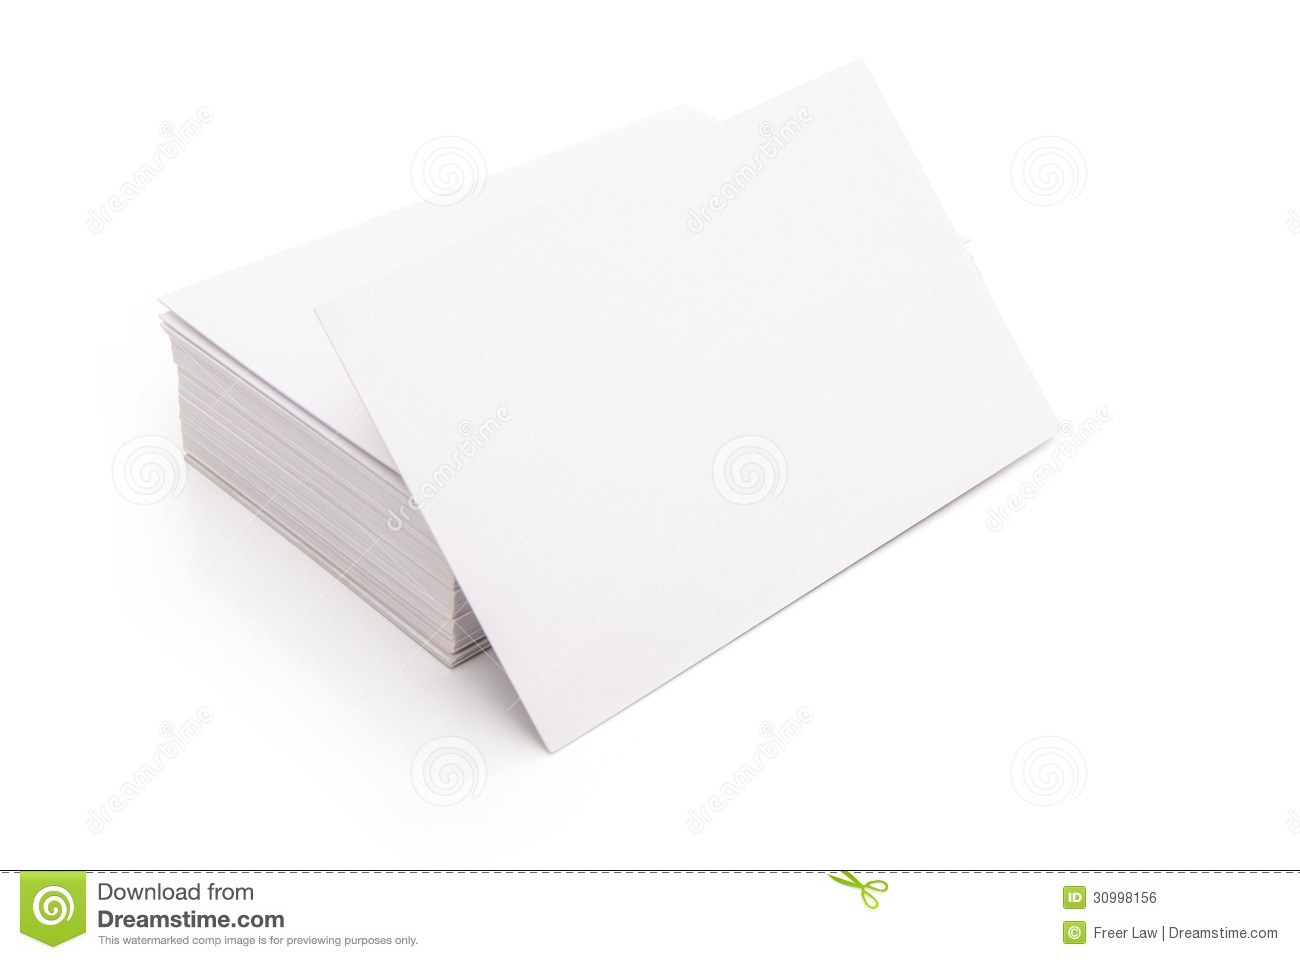 Blank business cards stock photo image of clean address 30998156 blank business cards colourmoves